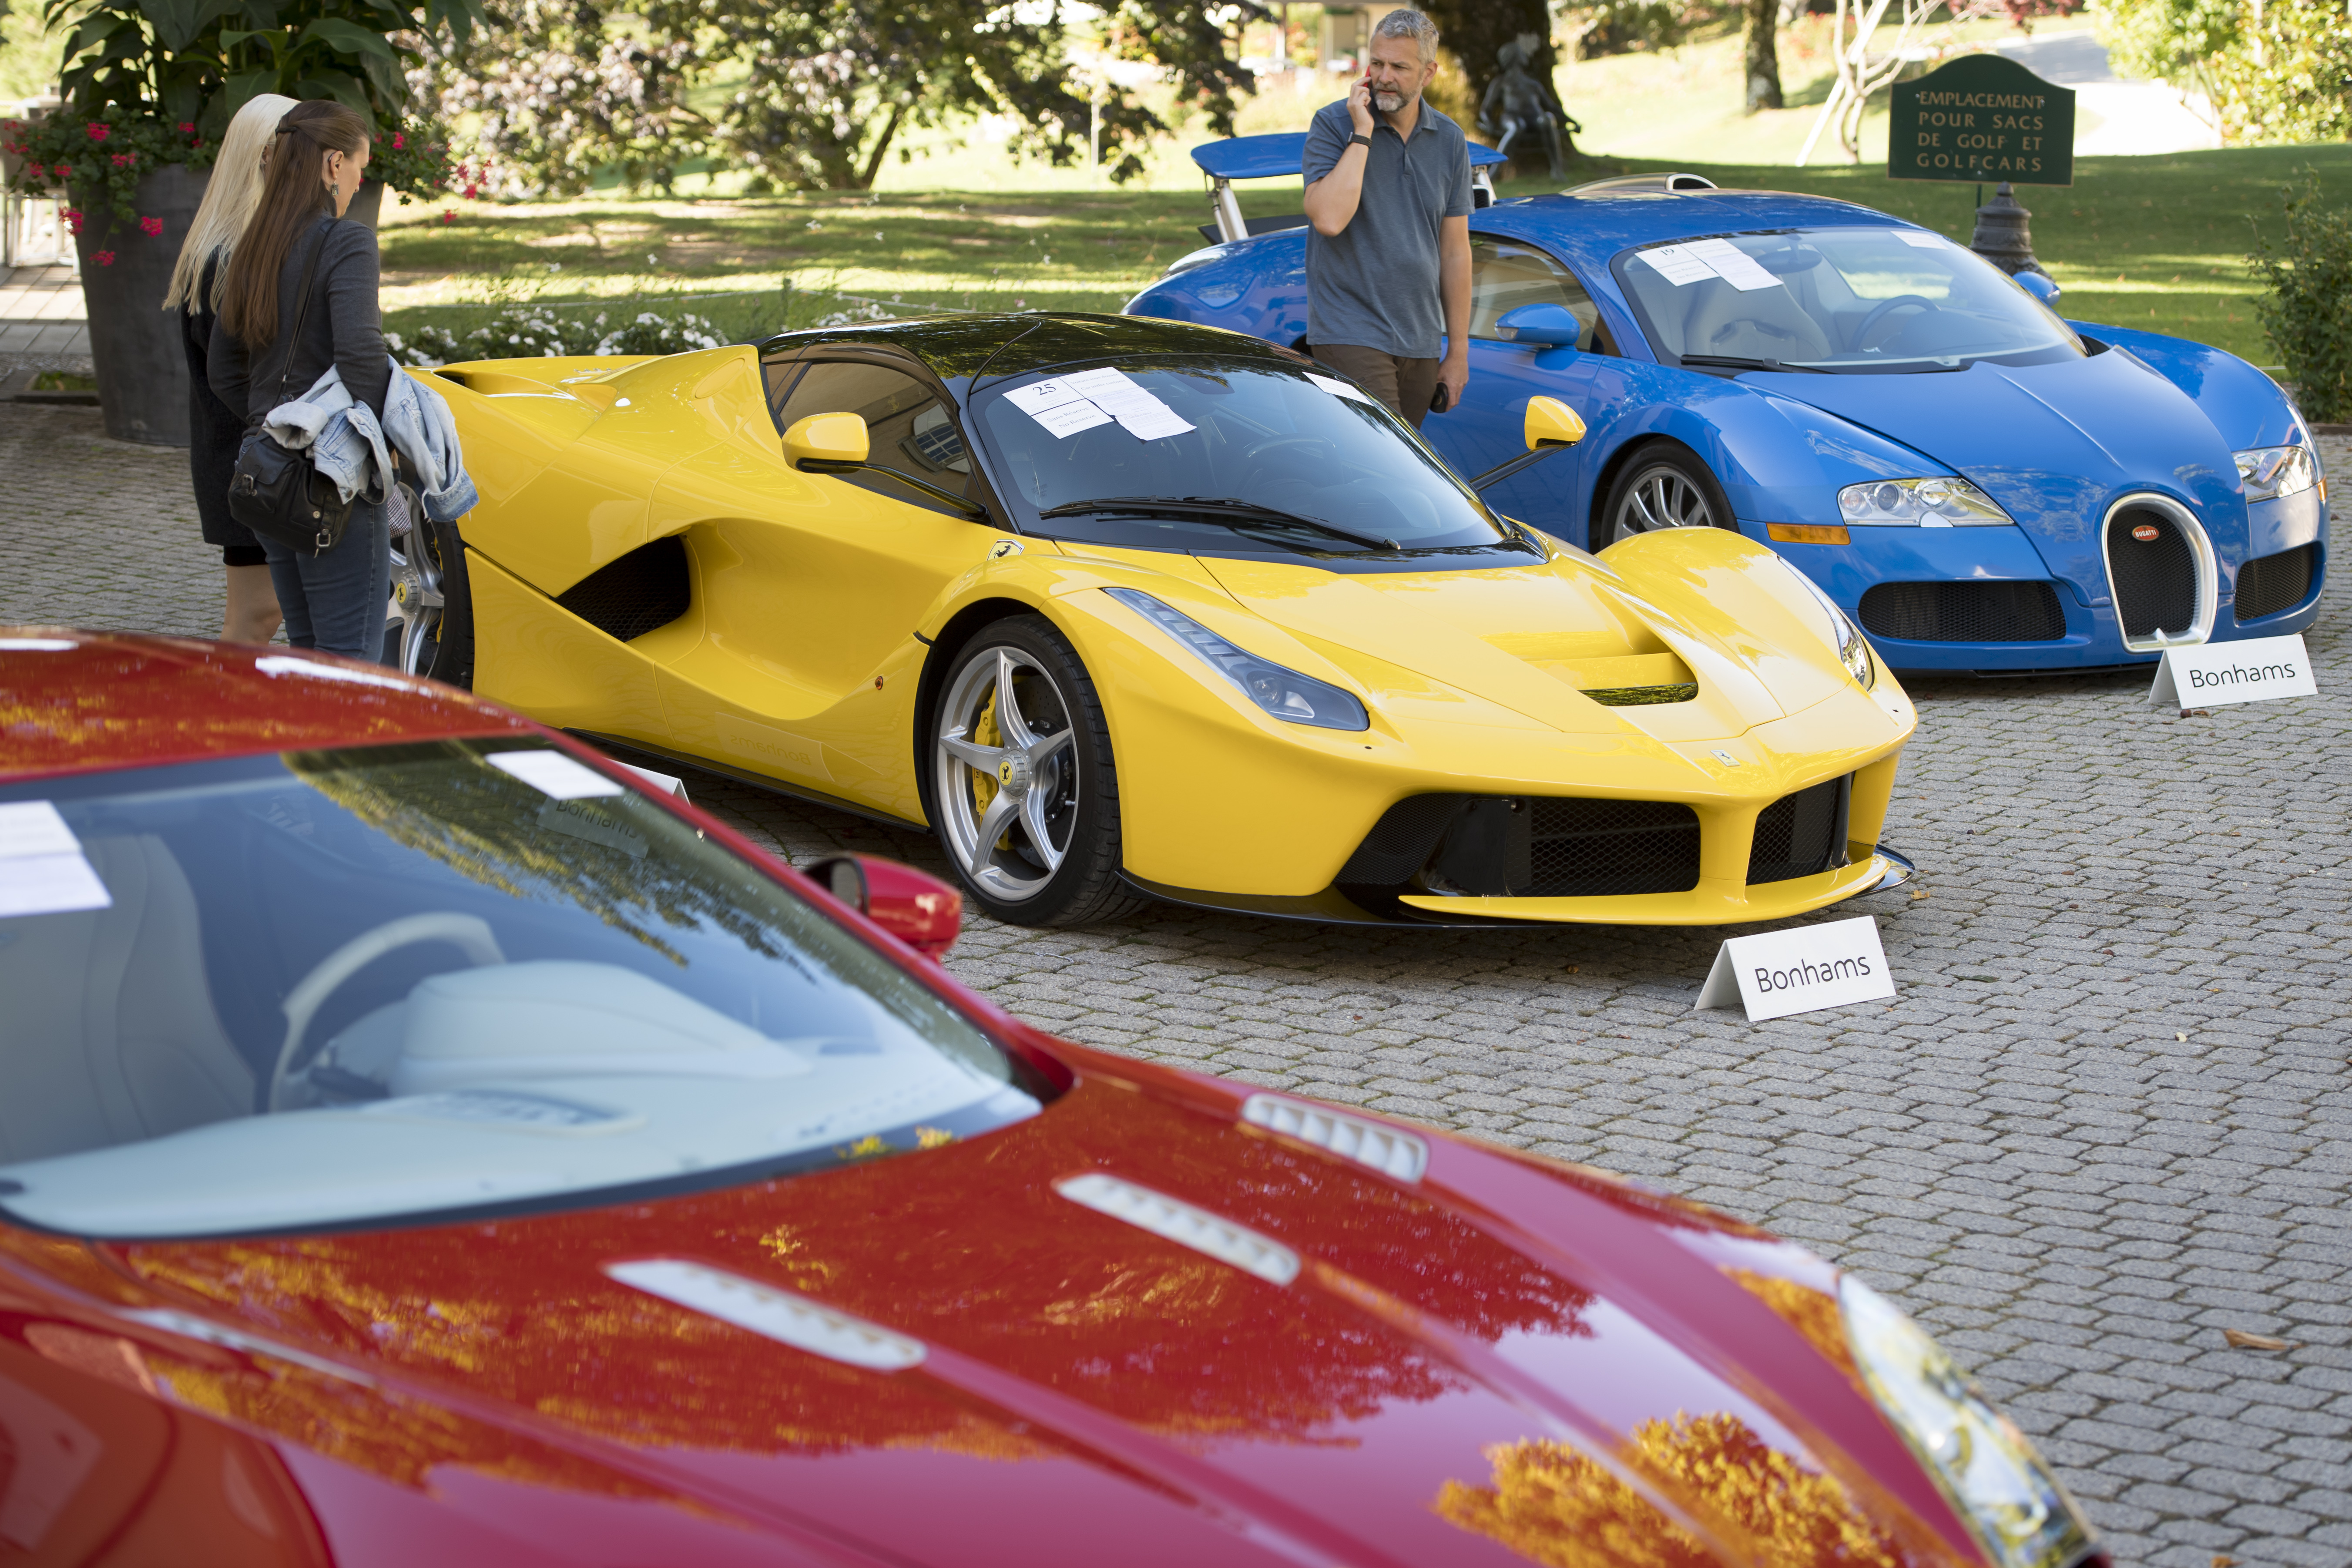 Supercars taken from African leaders son auctioned for $27M